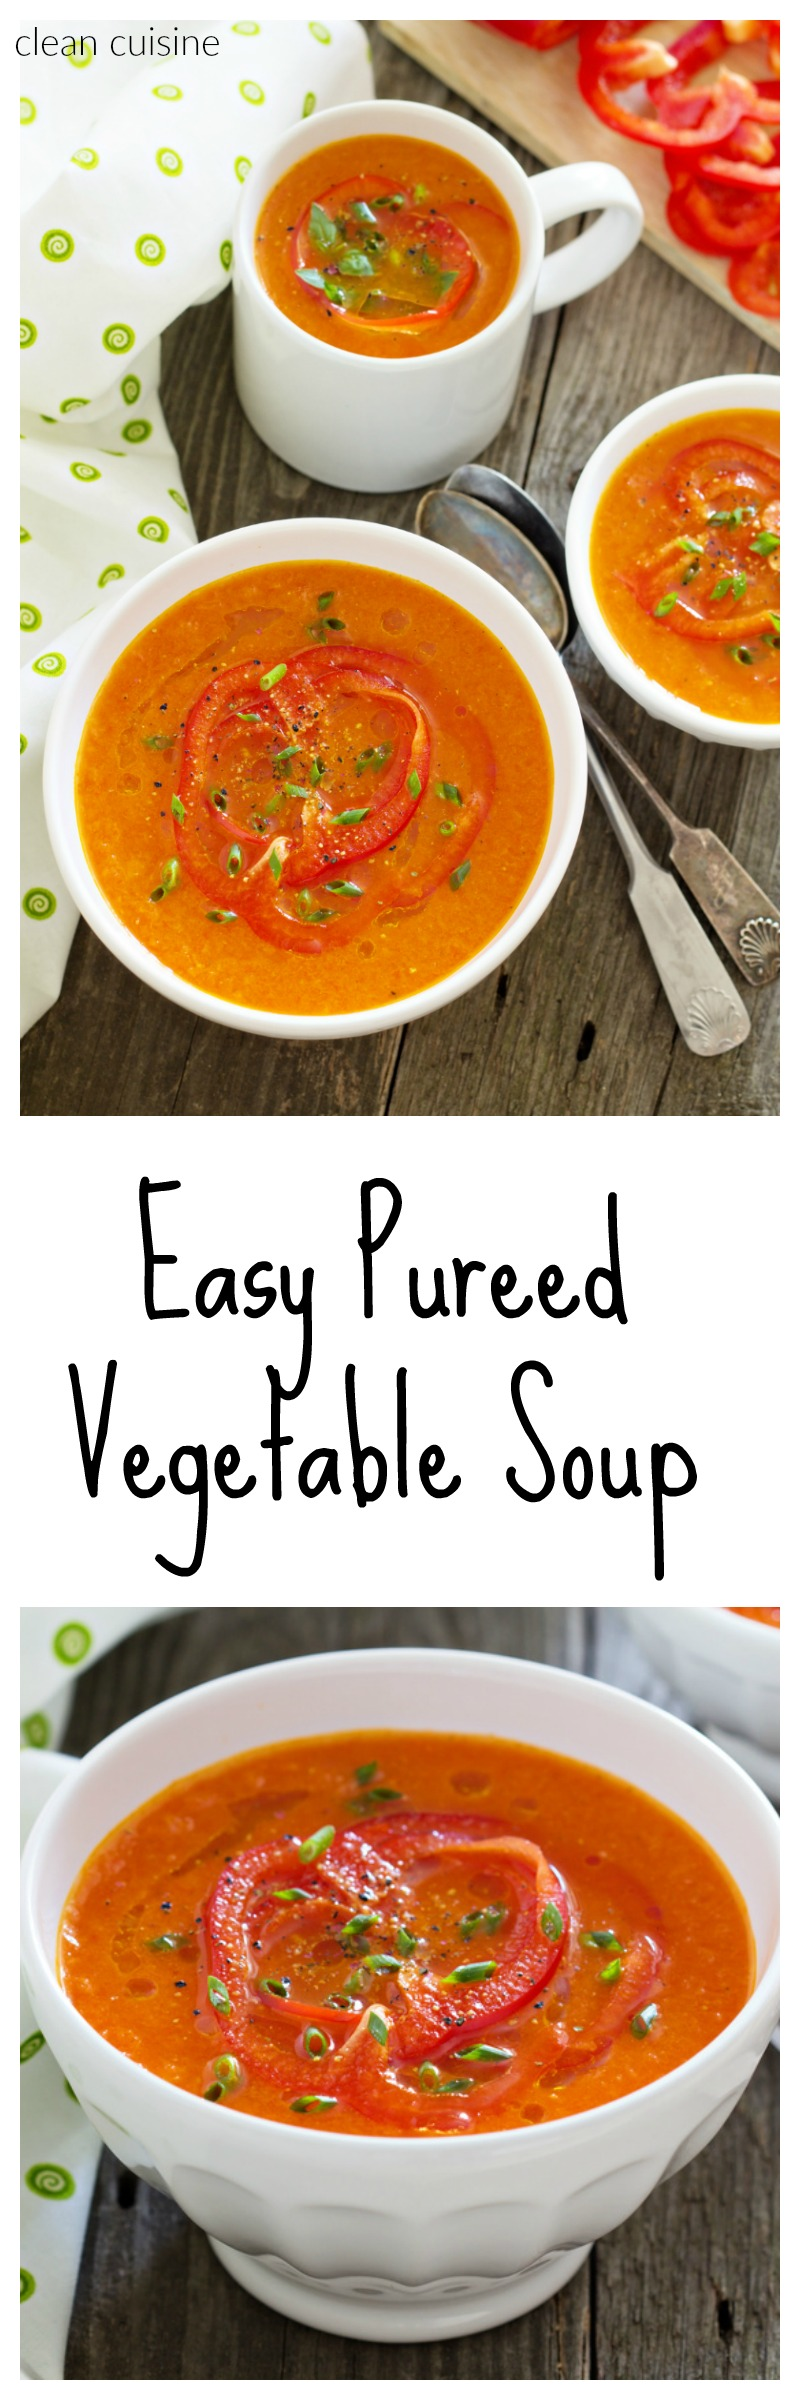 Pureed Vegetable Soup